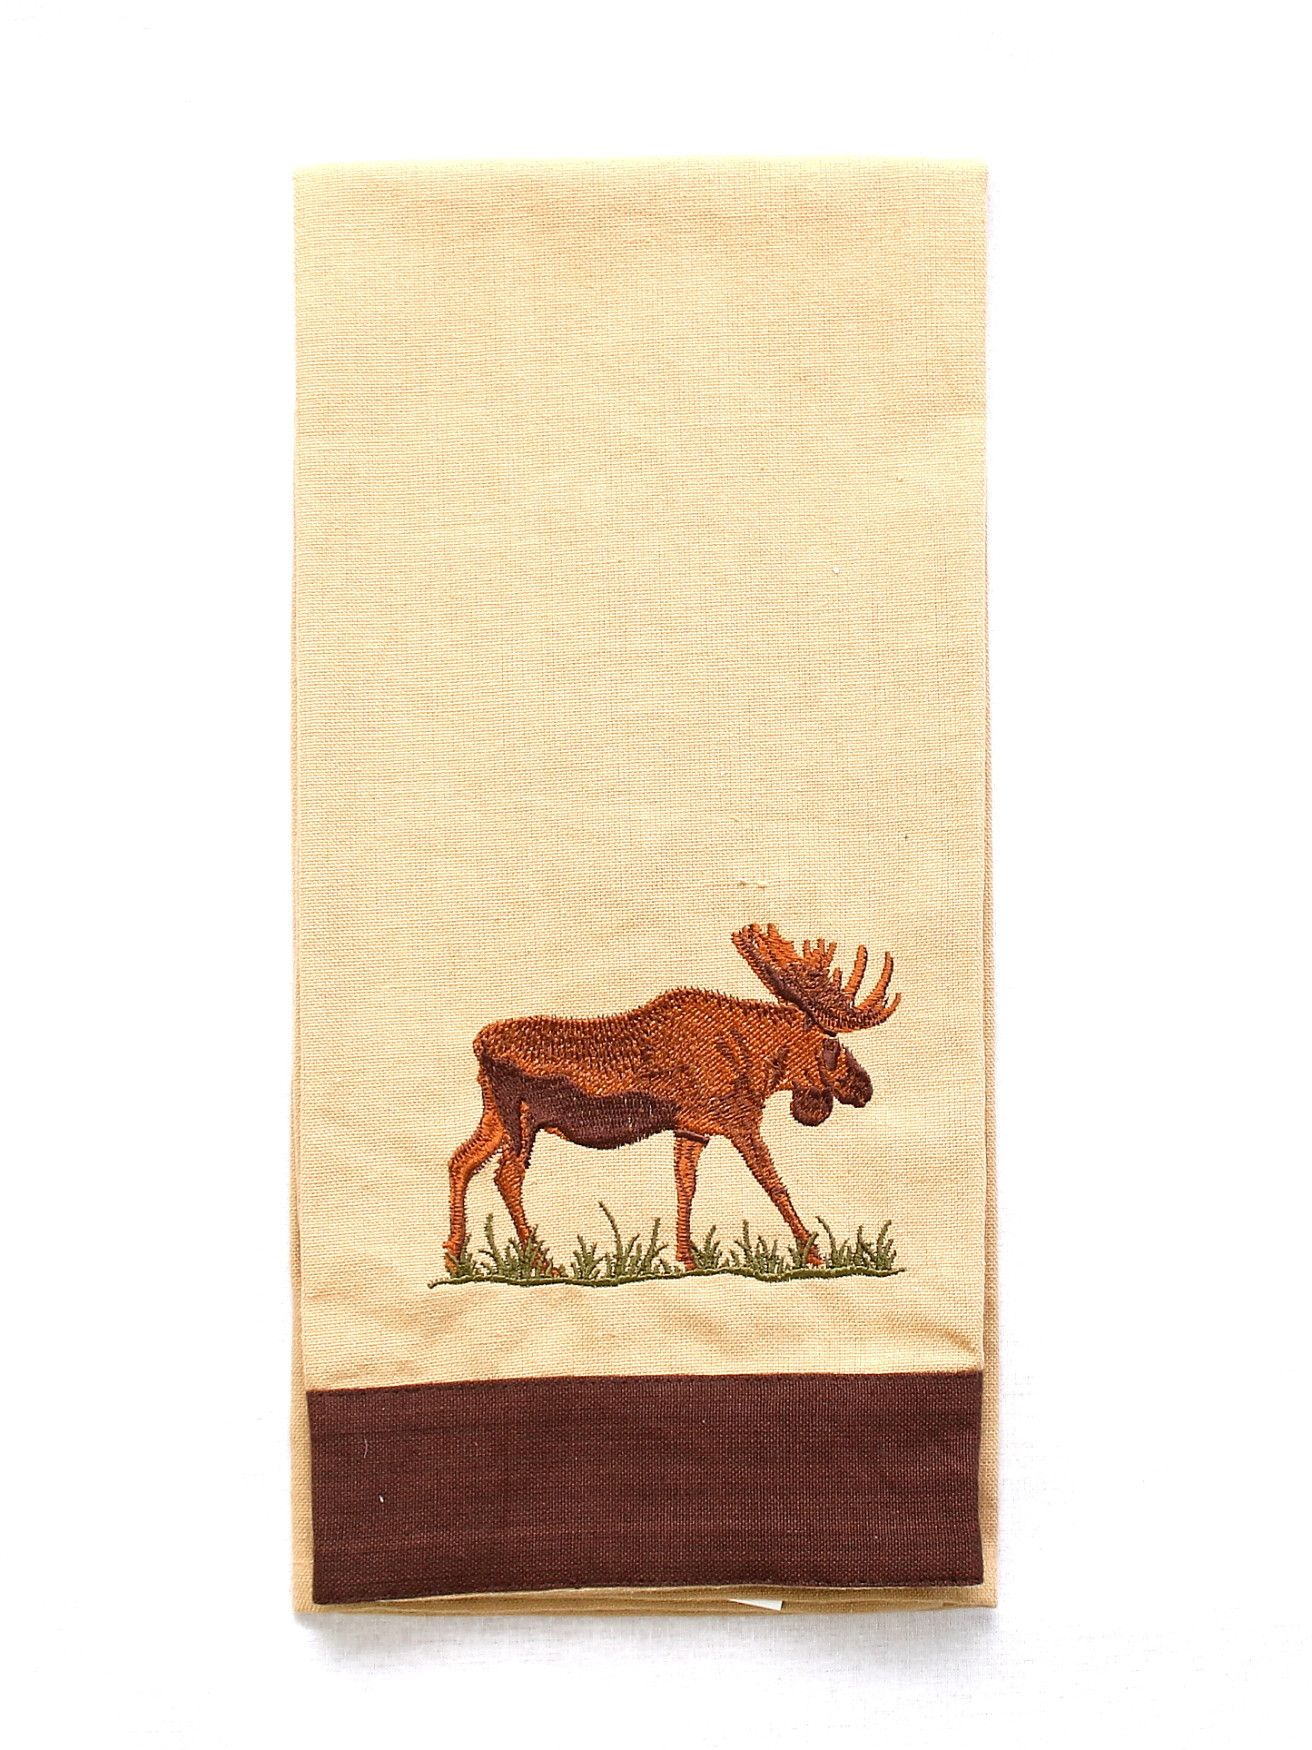 Moose Dish Towel From Home Comfort Moose Pictures Moose Decor Moose Crafts